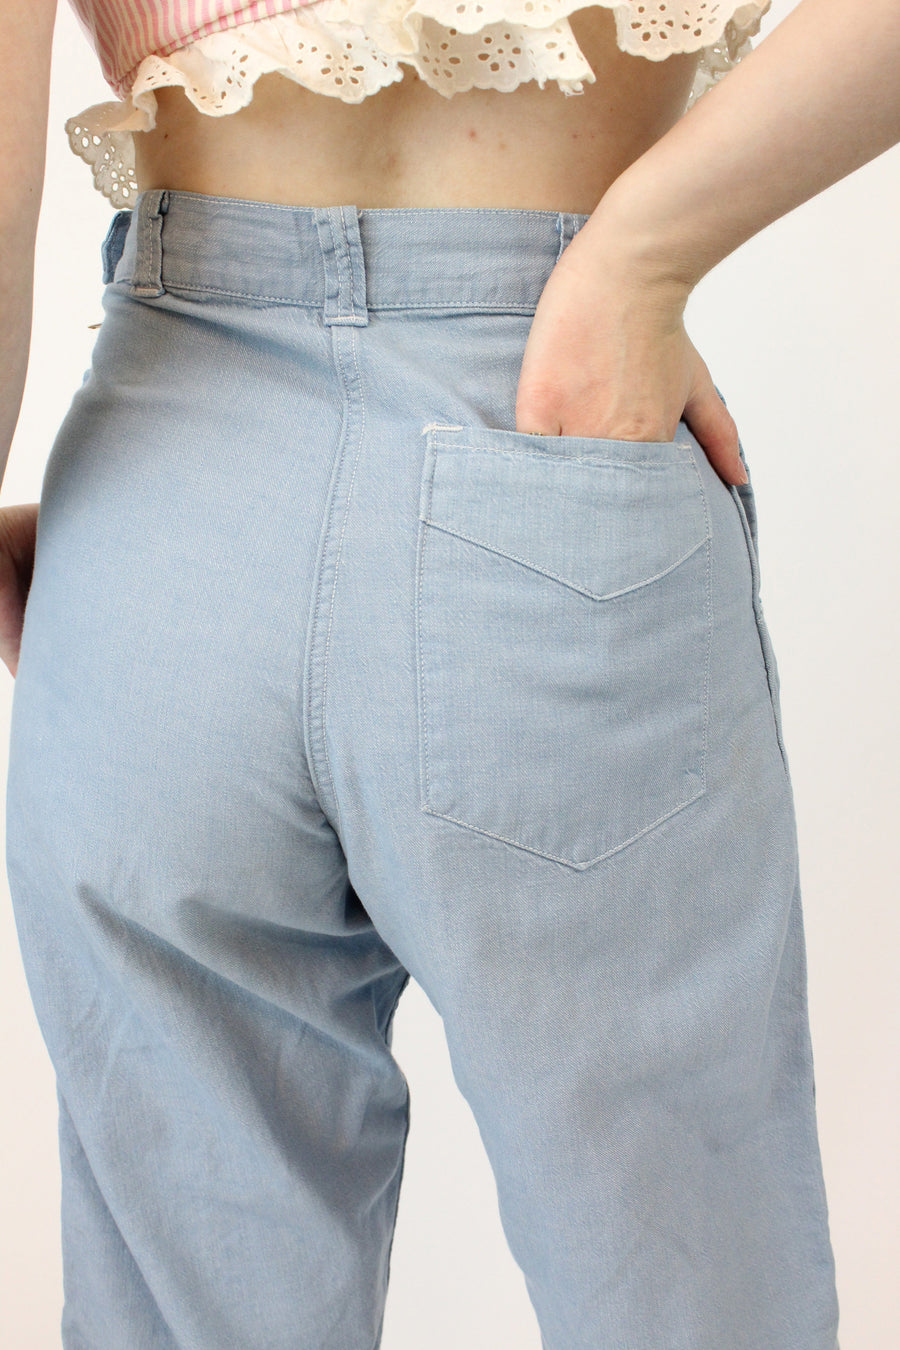 1950s Levi's jeans denim workwear xs | high-waisted pedal pushers pants  | new in